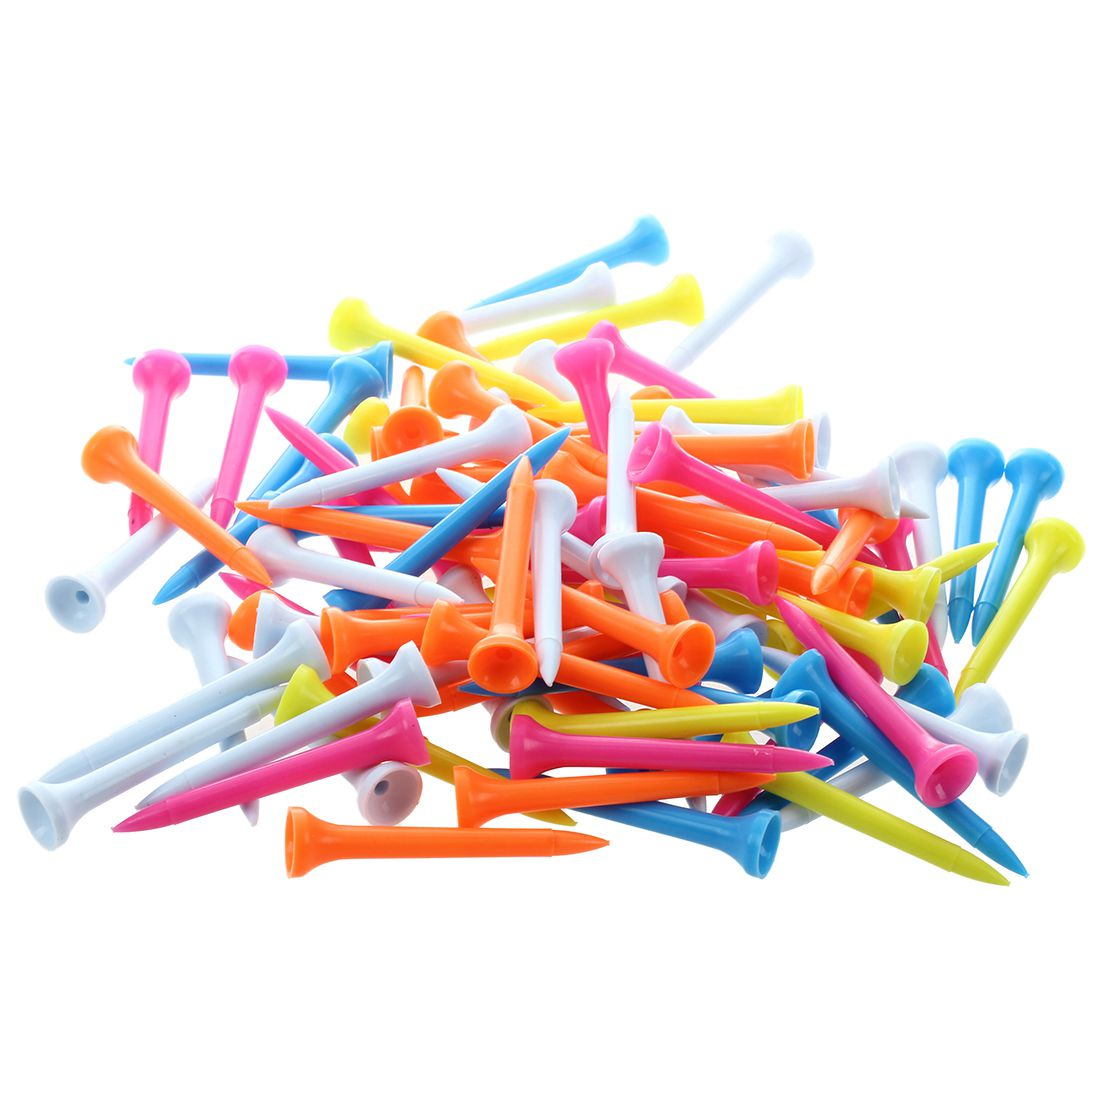 100 pcs Golf Tees 54 mm Plastic Mixed Color